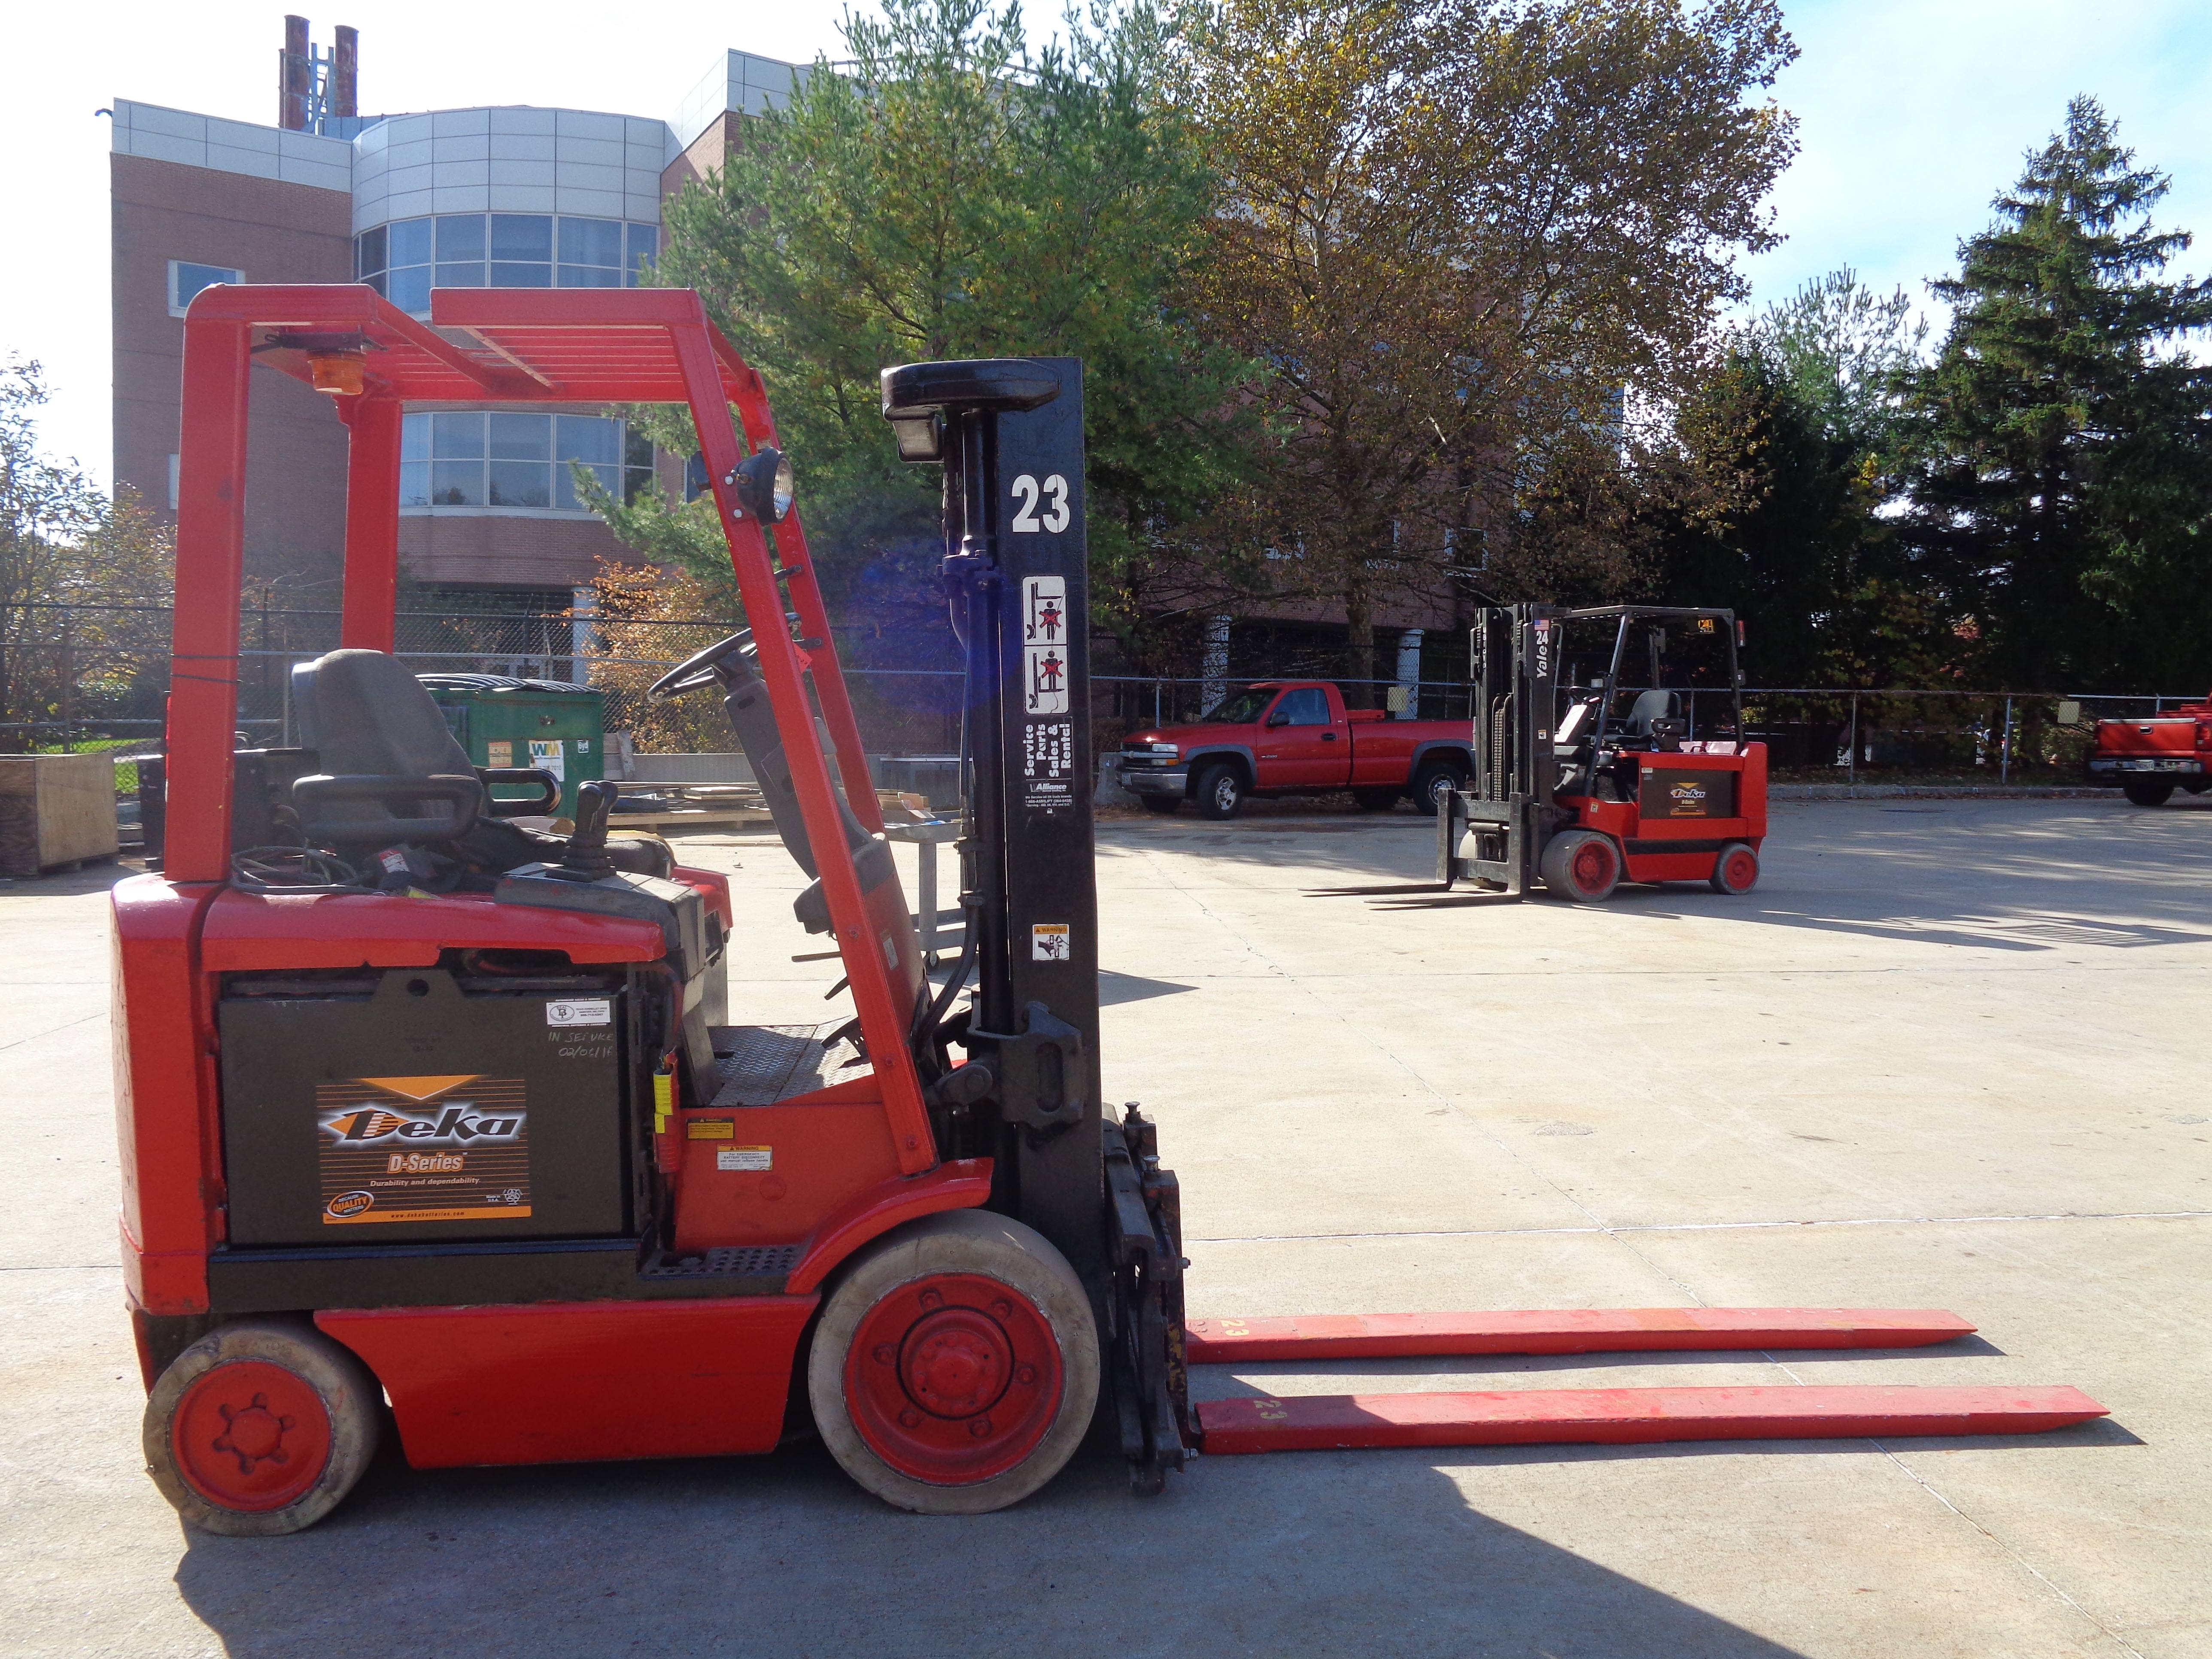 1999 Hyster E50XM-27 Forklift - 5,000 lbs - Image 2 of 5